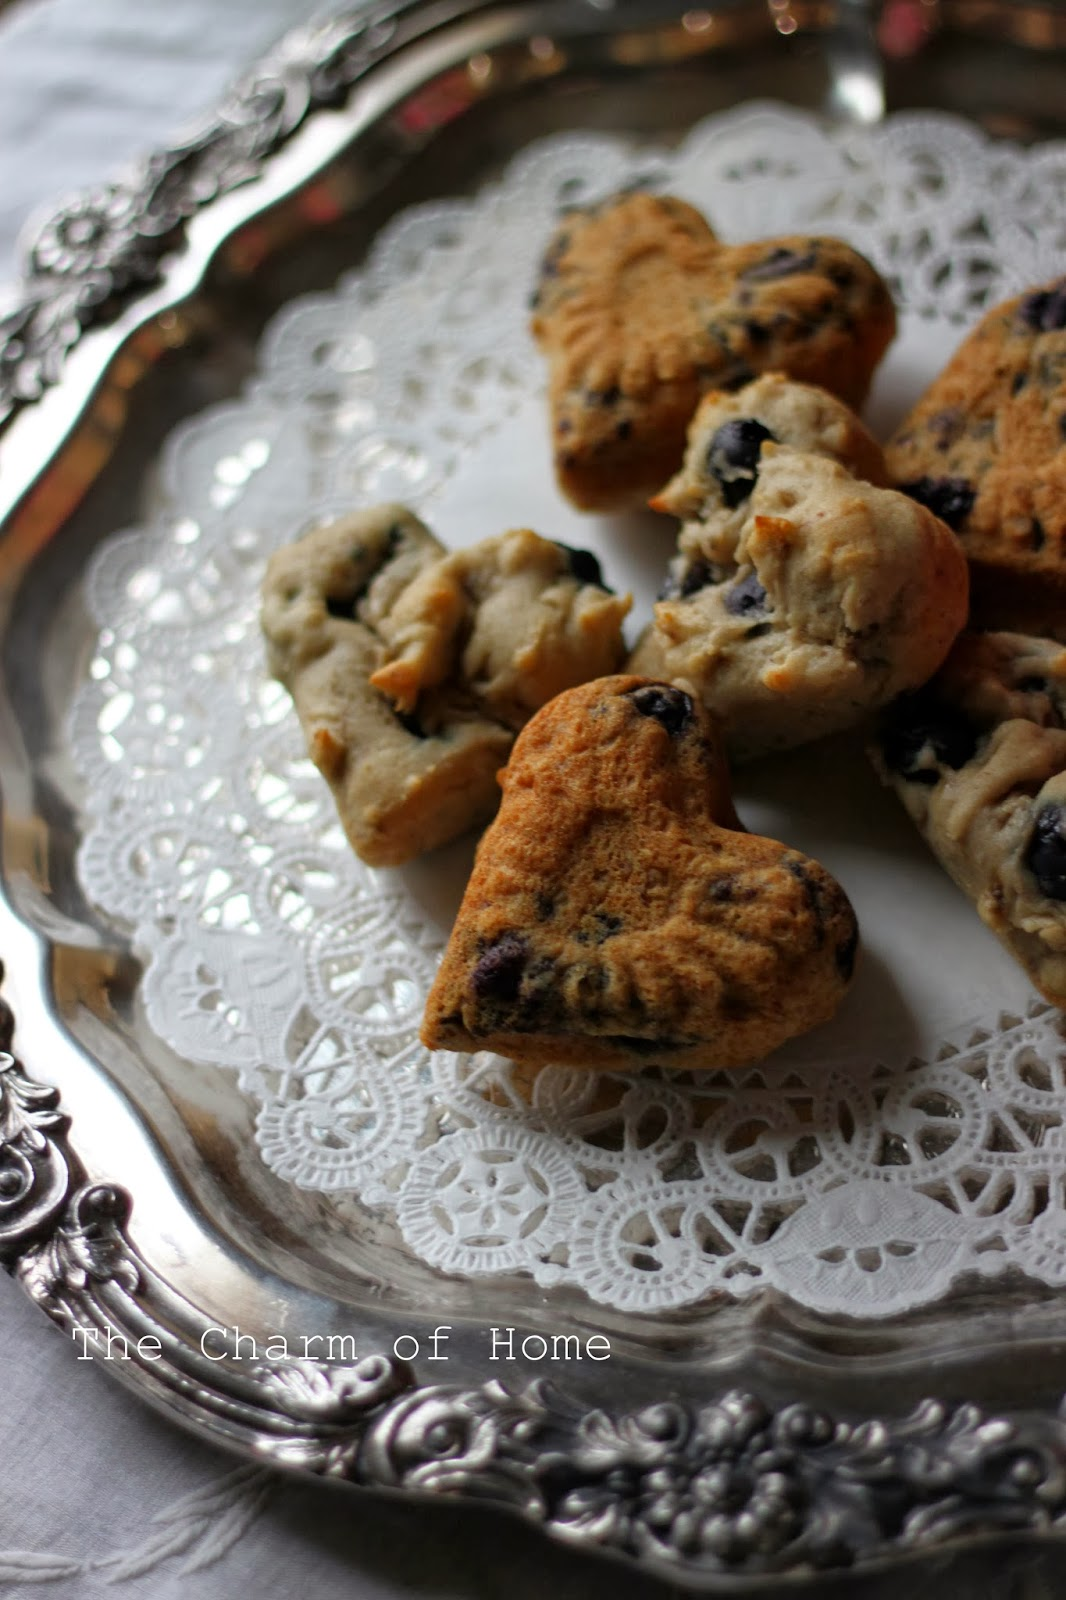 Gluten Free Blueberry Banana Muffins, The Charm of Home